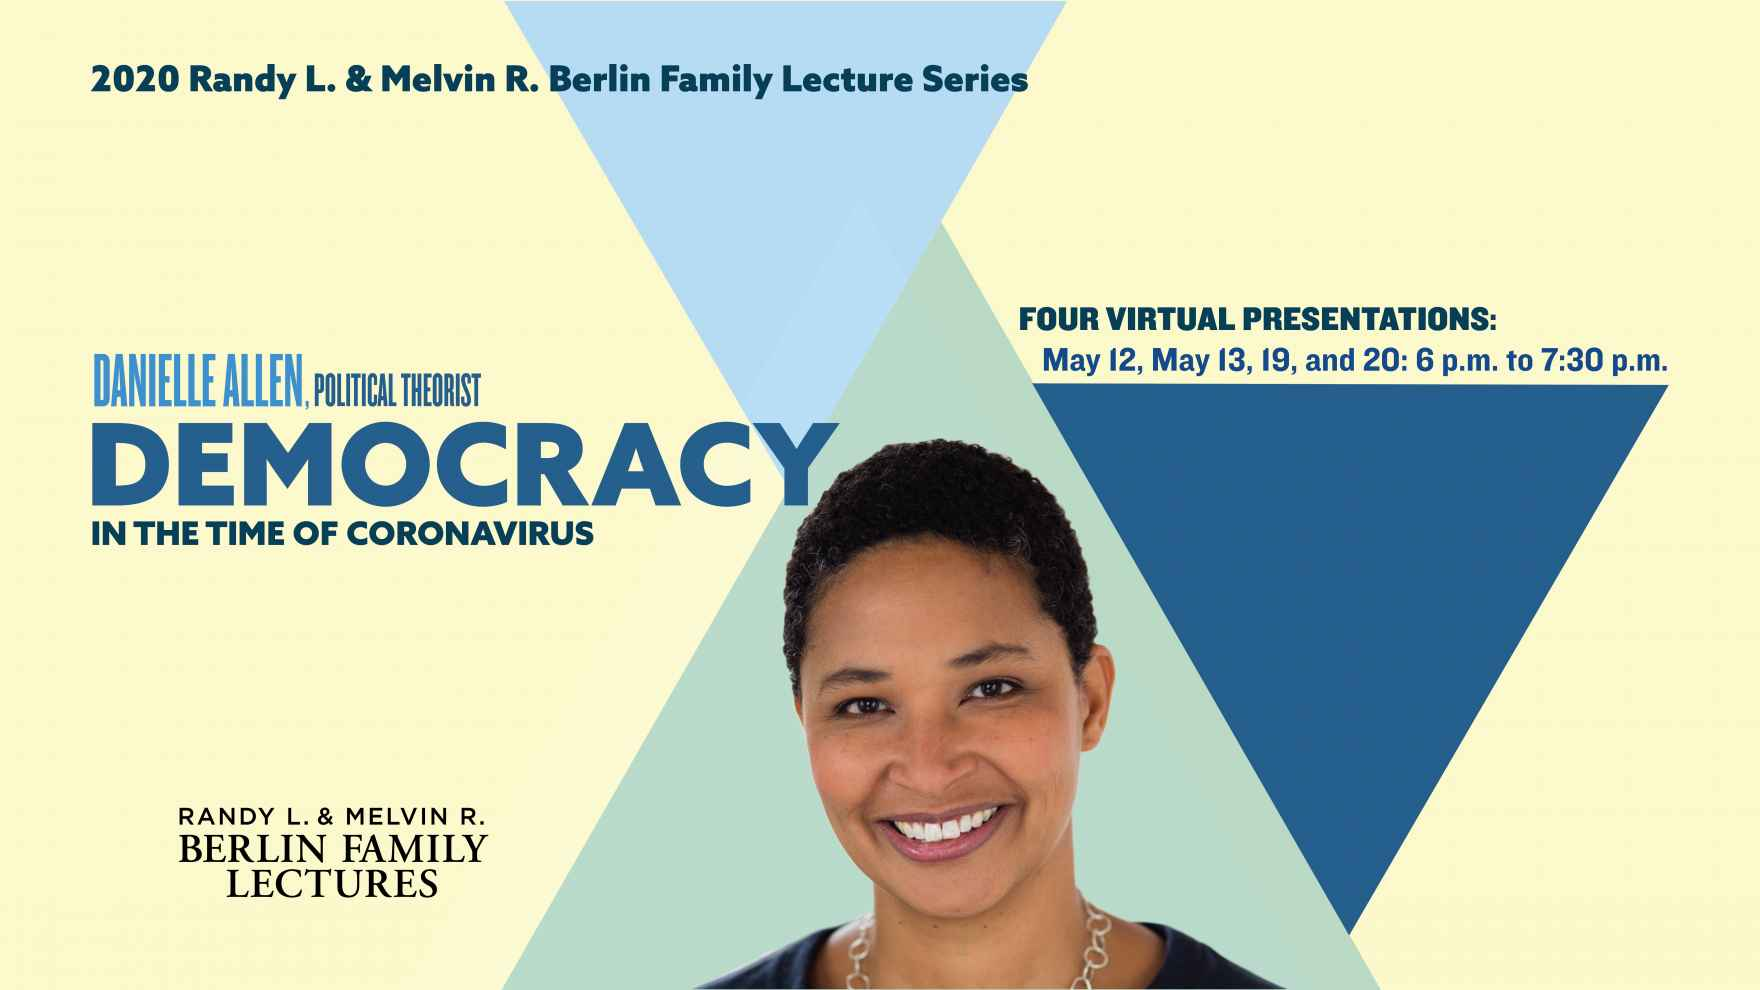 Virtual 2020 Berlin Family Lectures on May 12, 13, 19, and 20